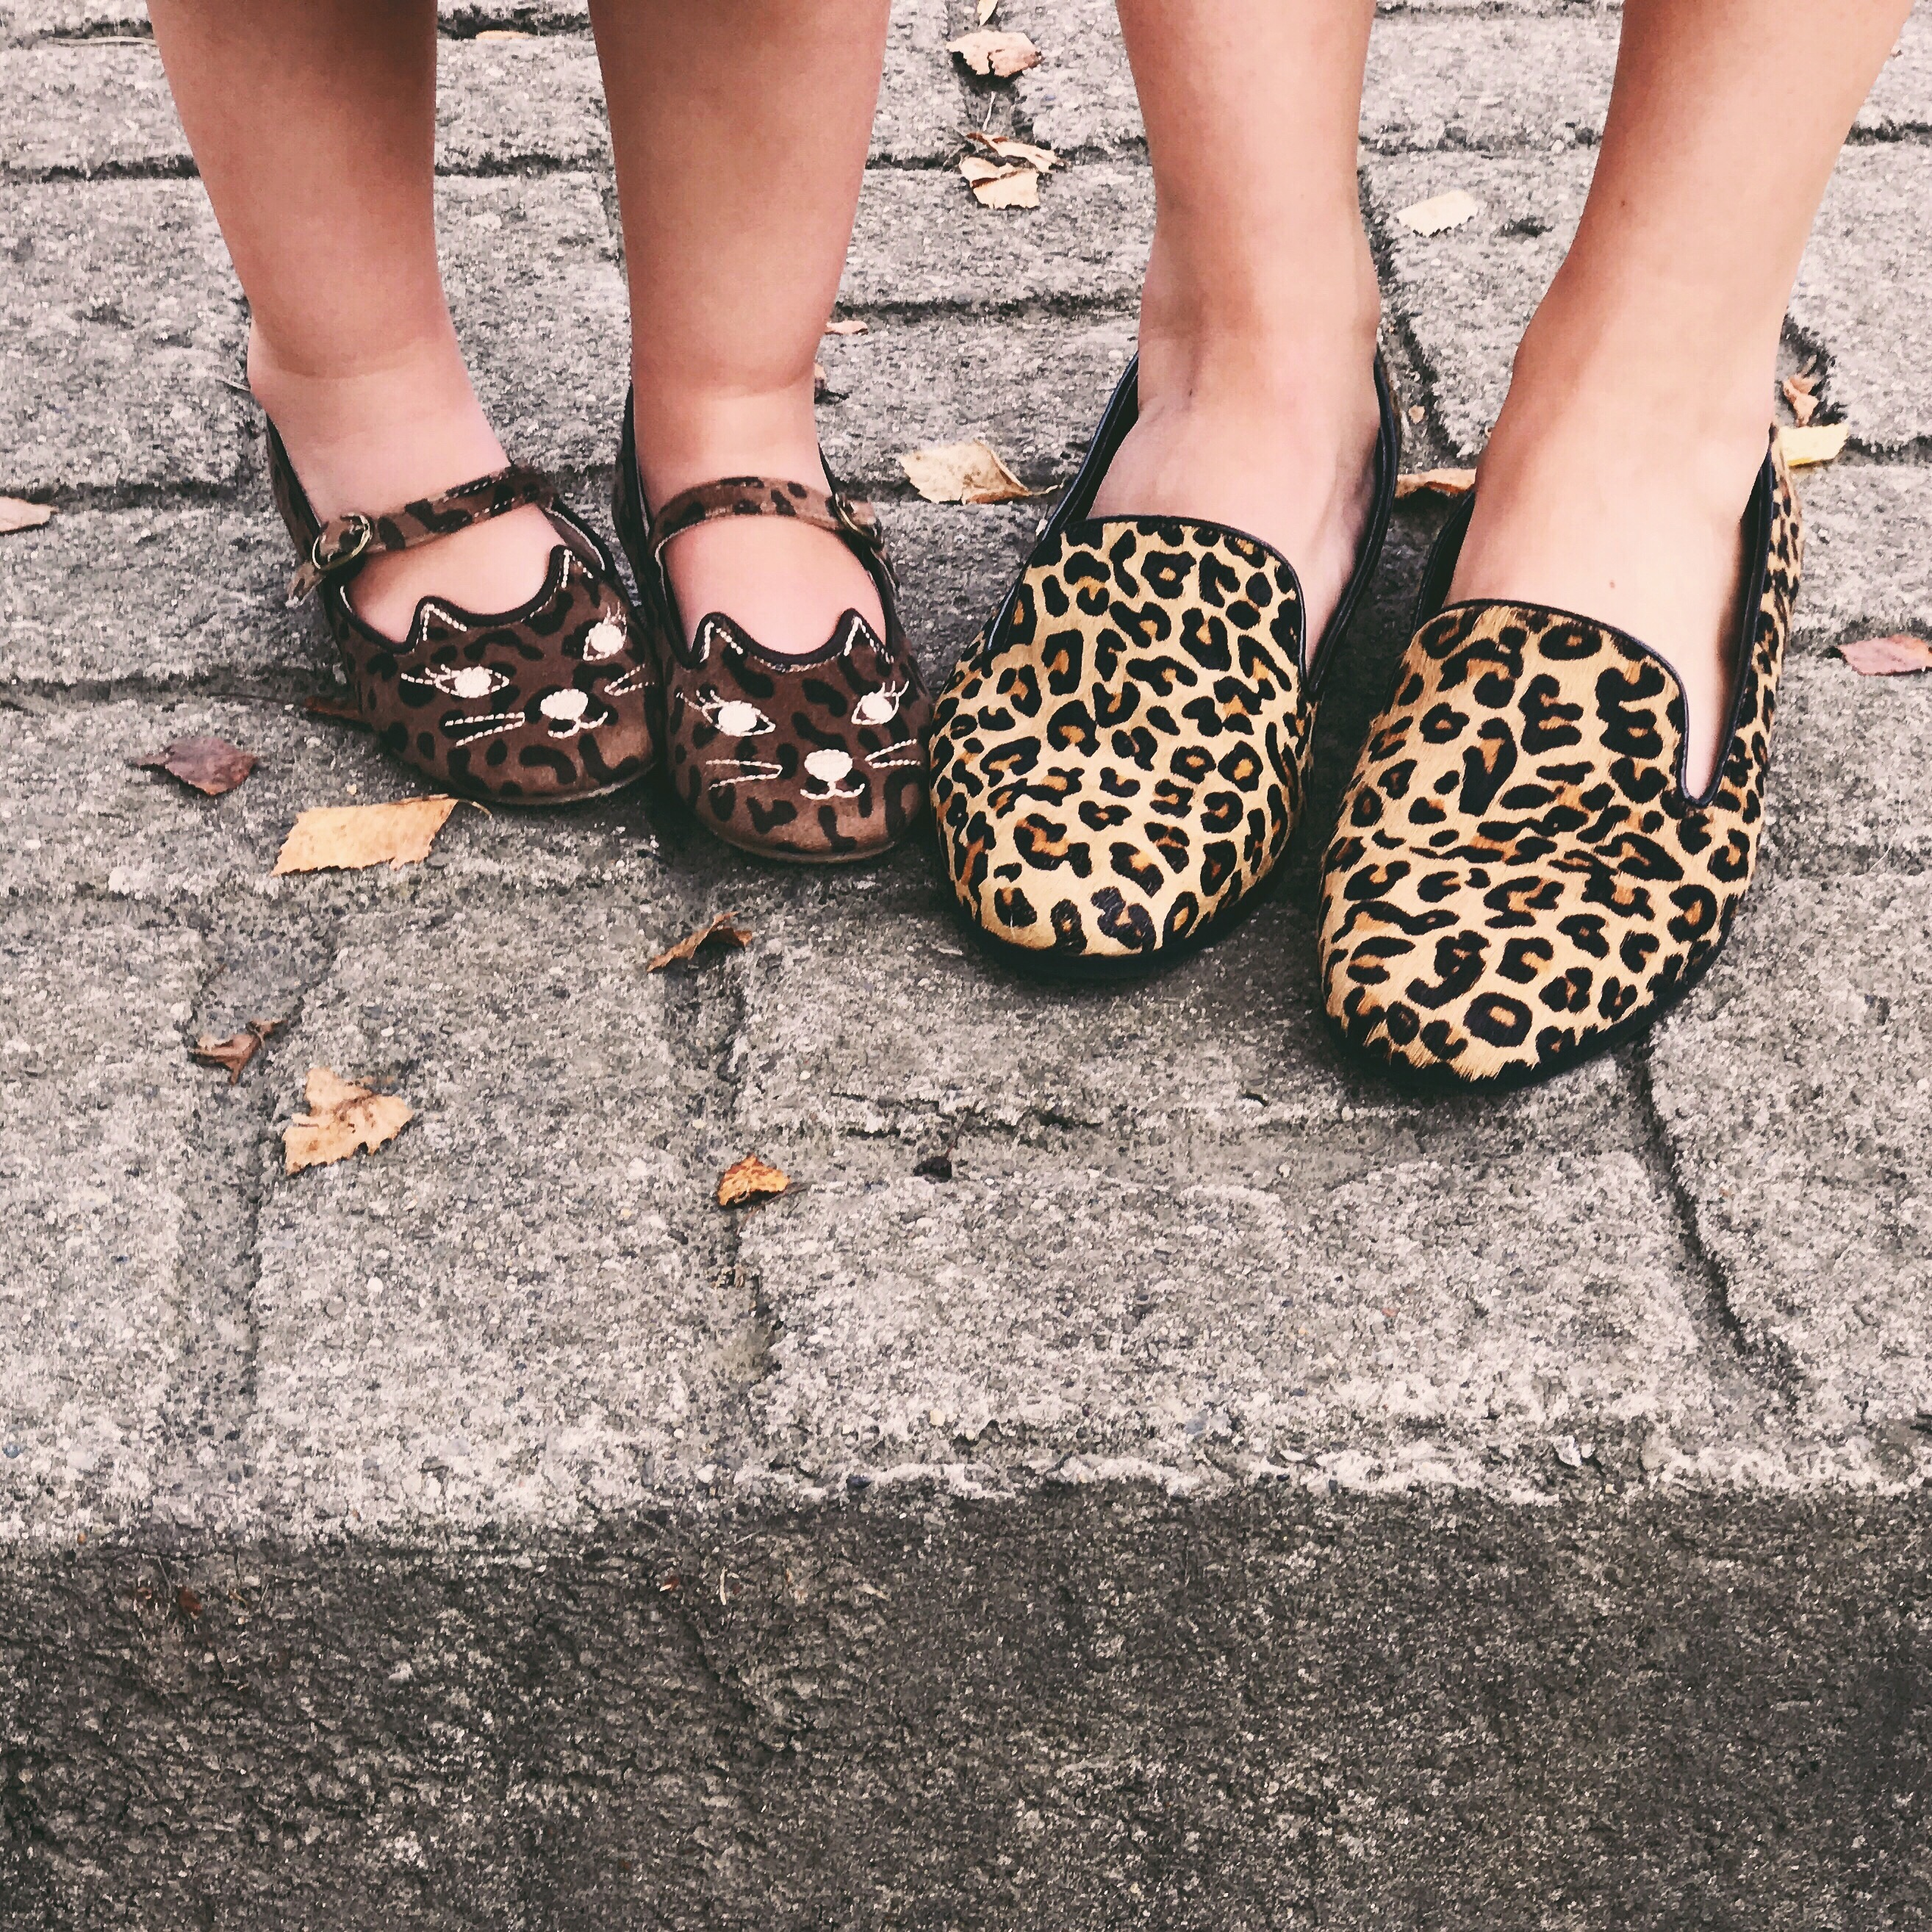 Mommy and Me Outfits: Military Green and Leopard Print matching outfits